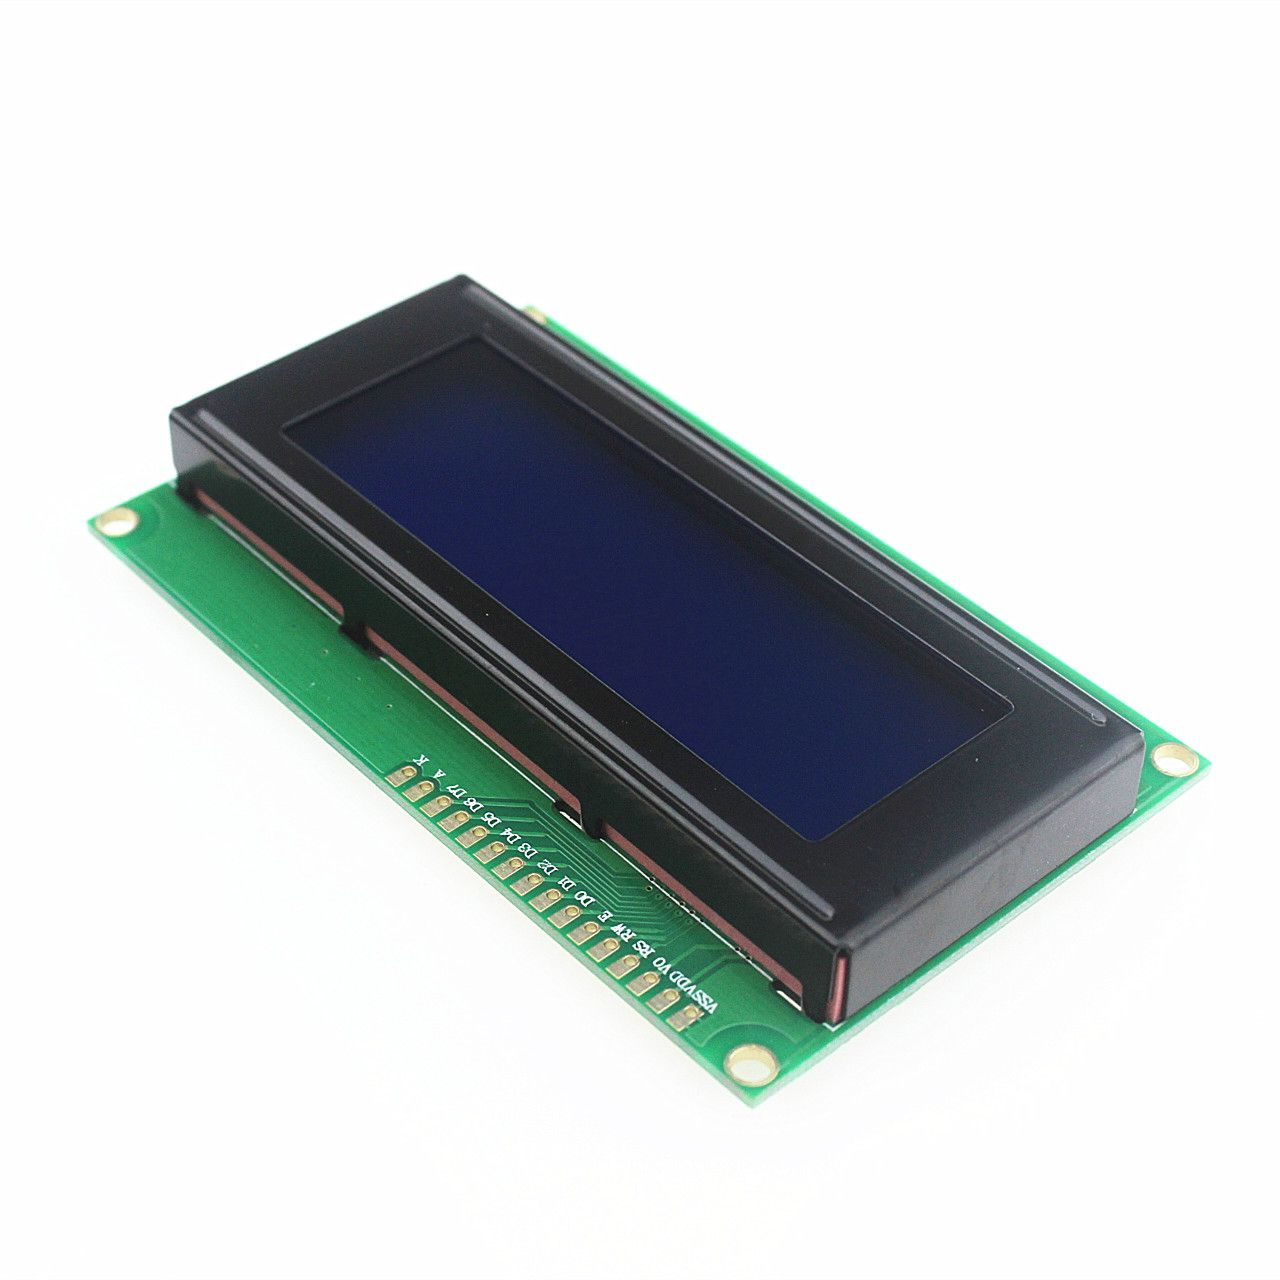 PCD5844 Pixels matrix lcd Nokia 5110  84*48 Mini LCD Display Raspberry Pi B+